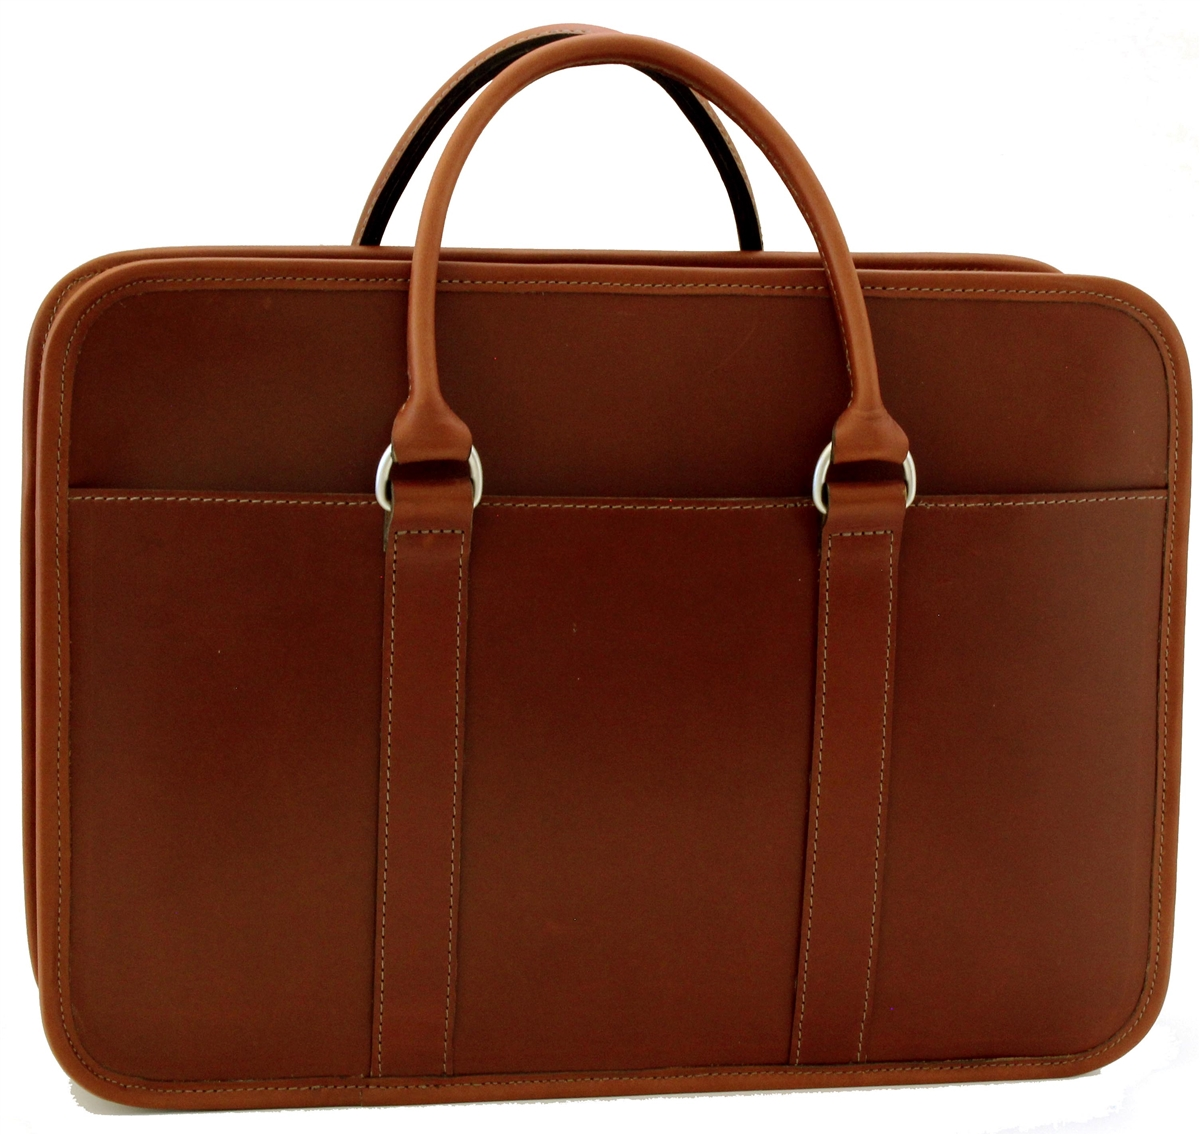 2bd9e13501 Arbitrator leather briefcase. Made in USA | Customhide.com